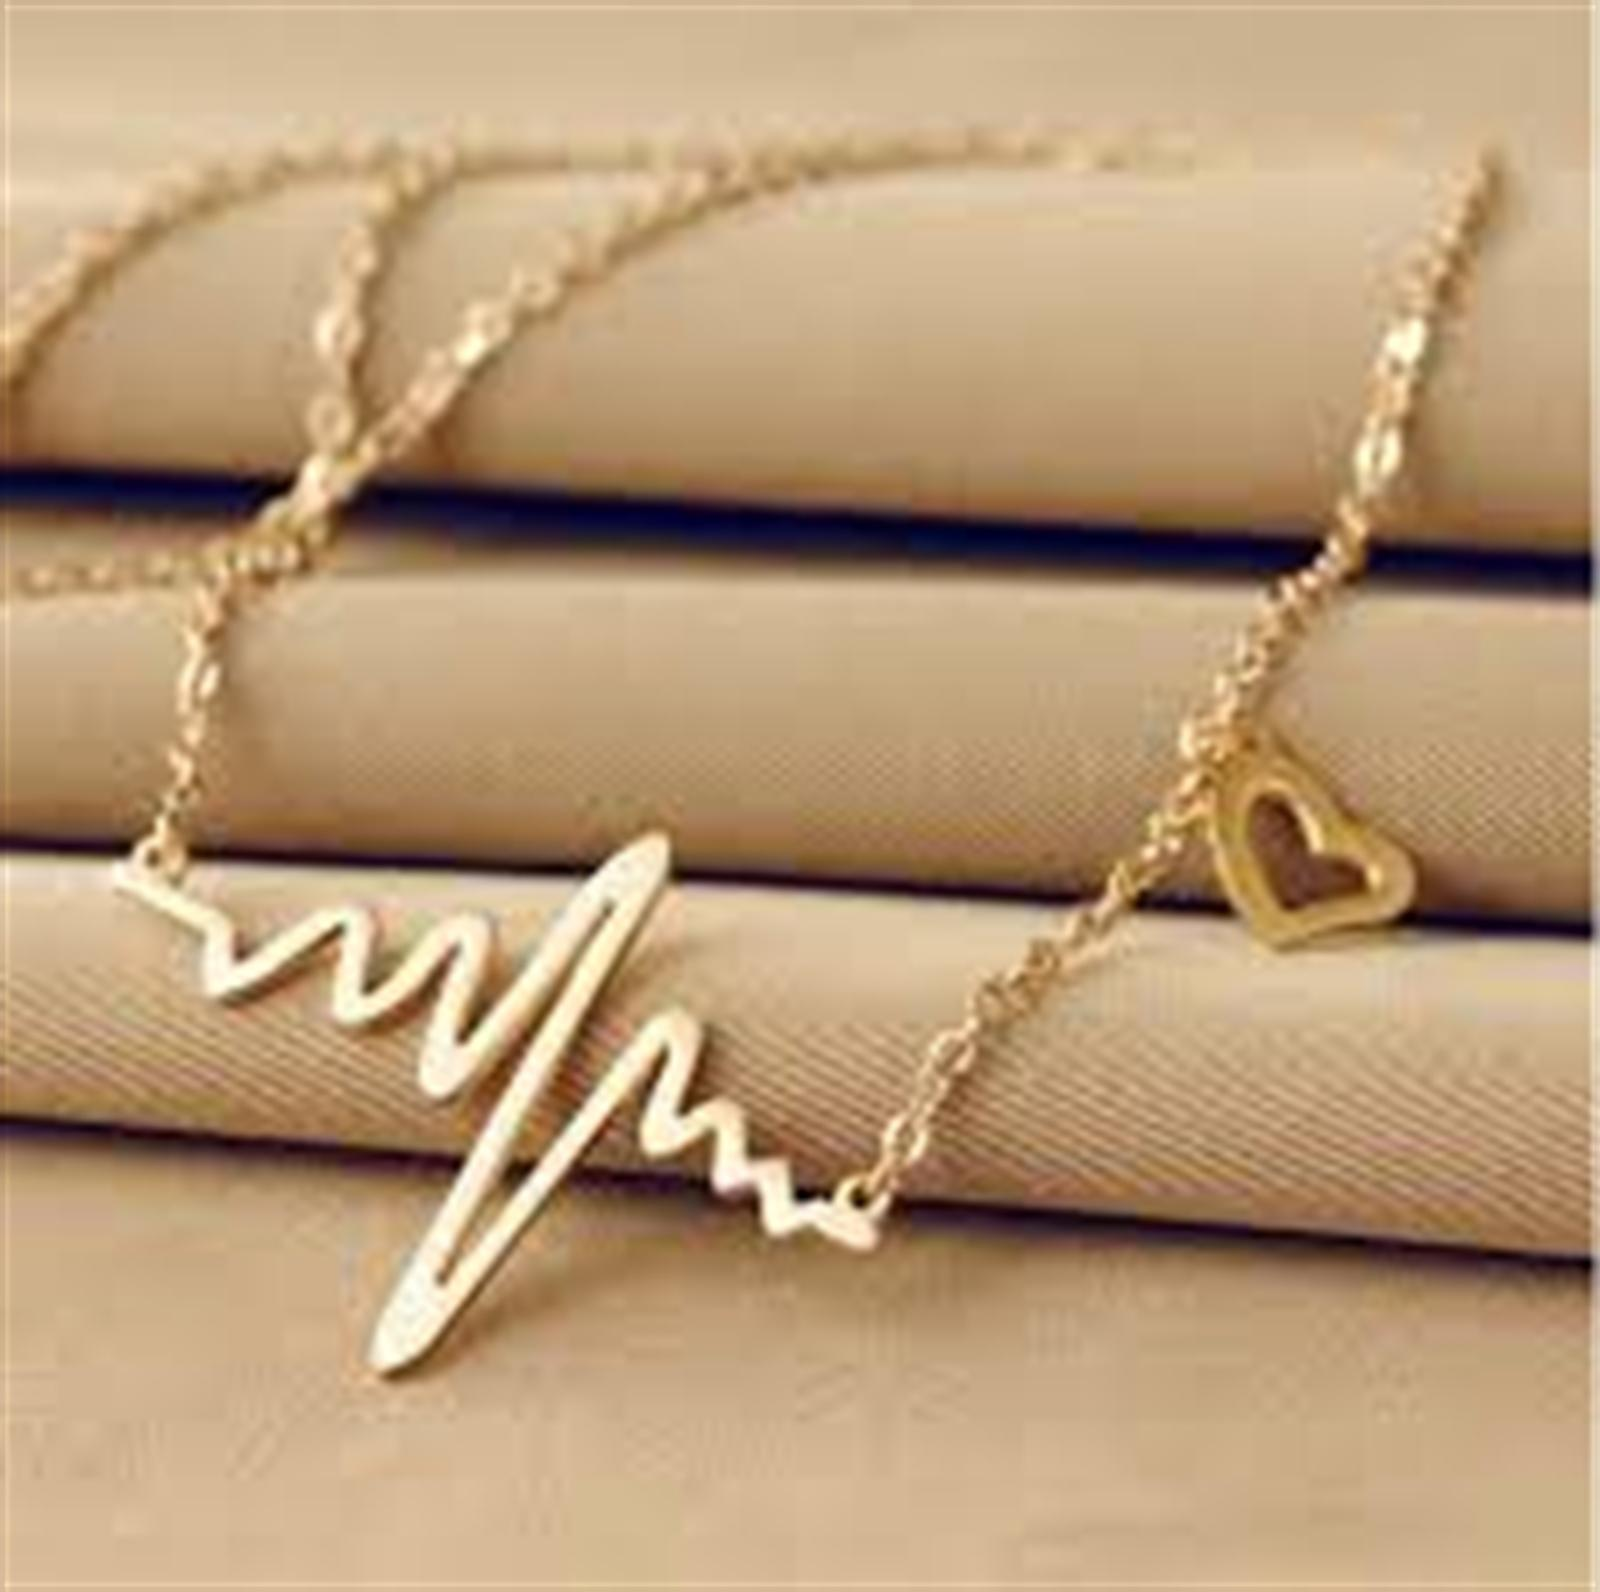 8196593d42 Fashion Jewelry For Women ECG Heart Necklace Clavicle Choker Pendant  Necklaces Heartbeat